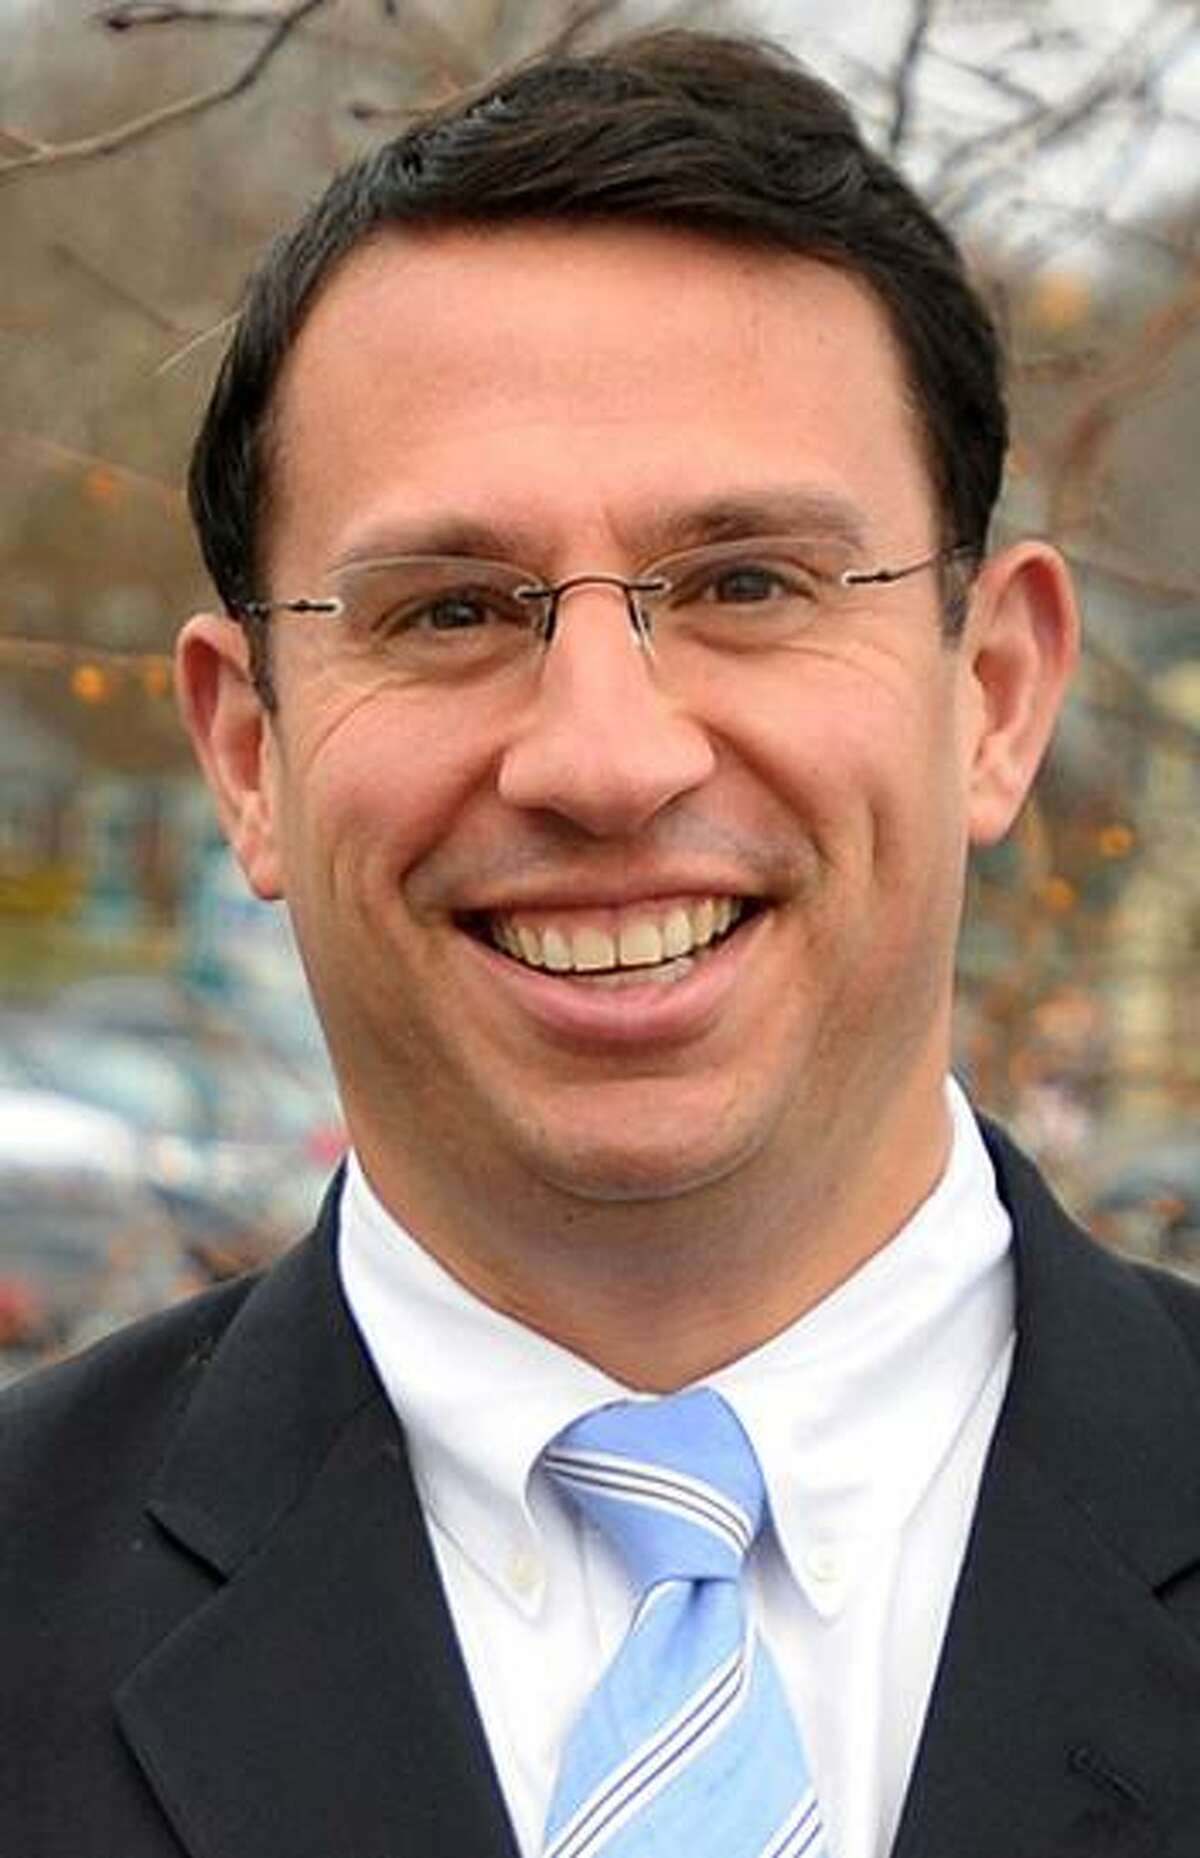 Milford Mayor Ben Blake says he's running for a fourth term. File photo.